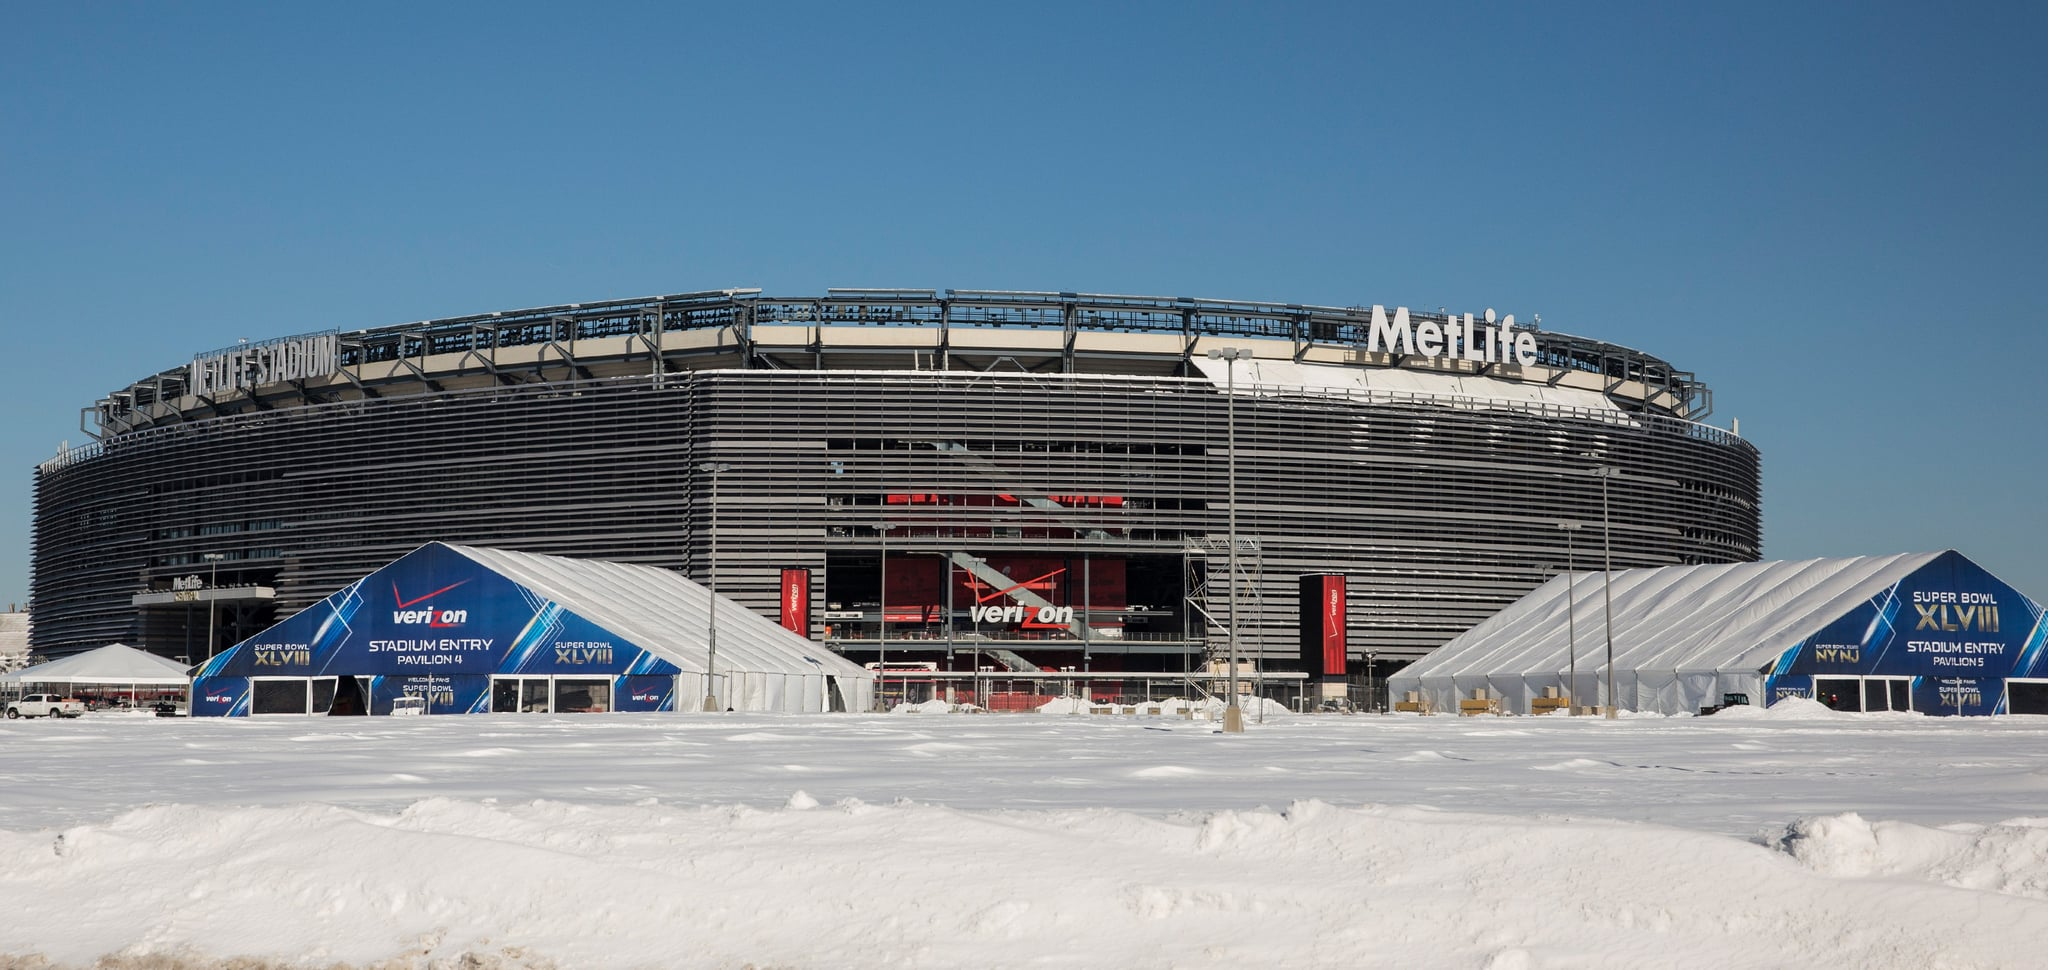 That's Right: The Super Bowl Could Happen on a Monday